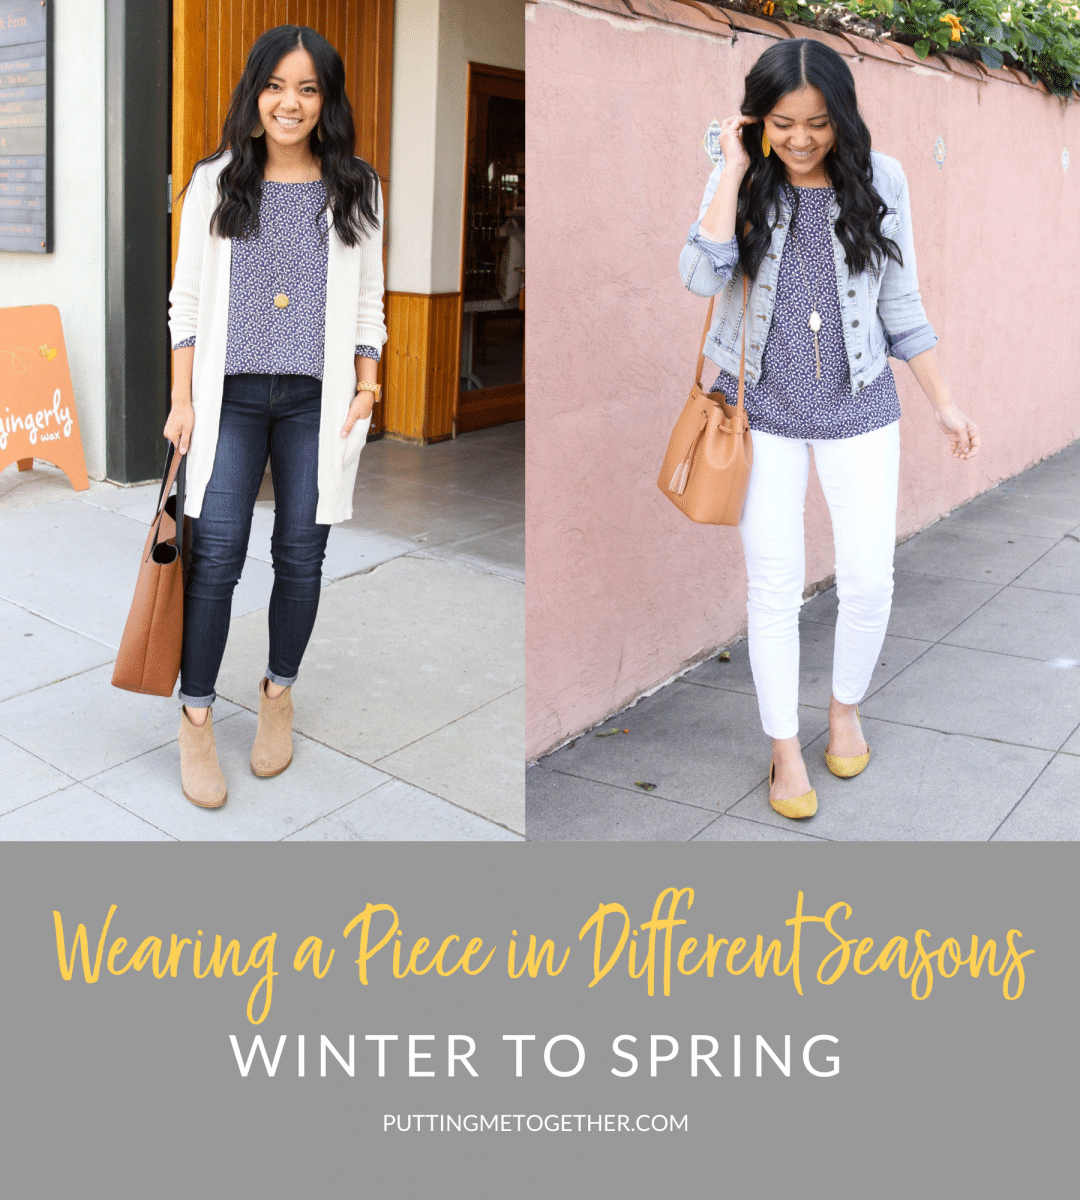 How to Wear Clothes in Different Seasons